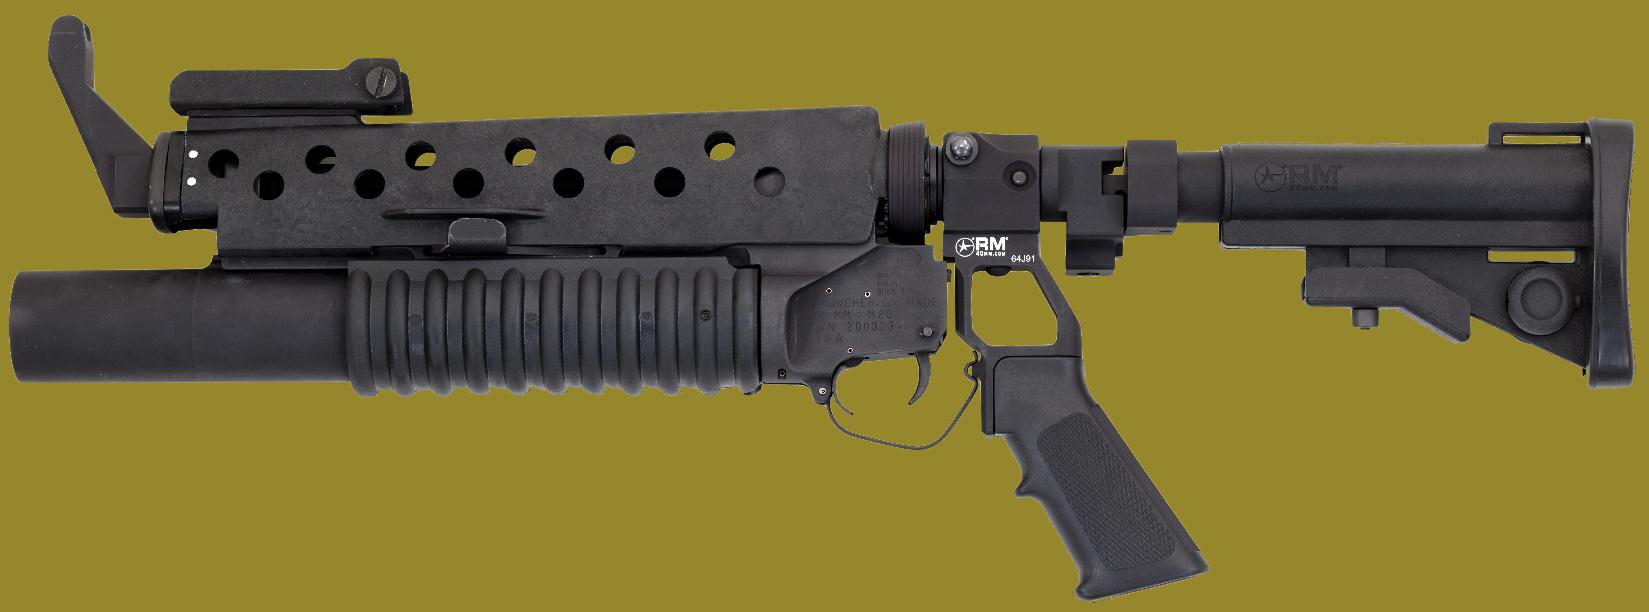 M203 40mm Grenade Launcher on Standalone Mount with stock extended.